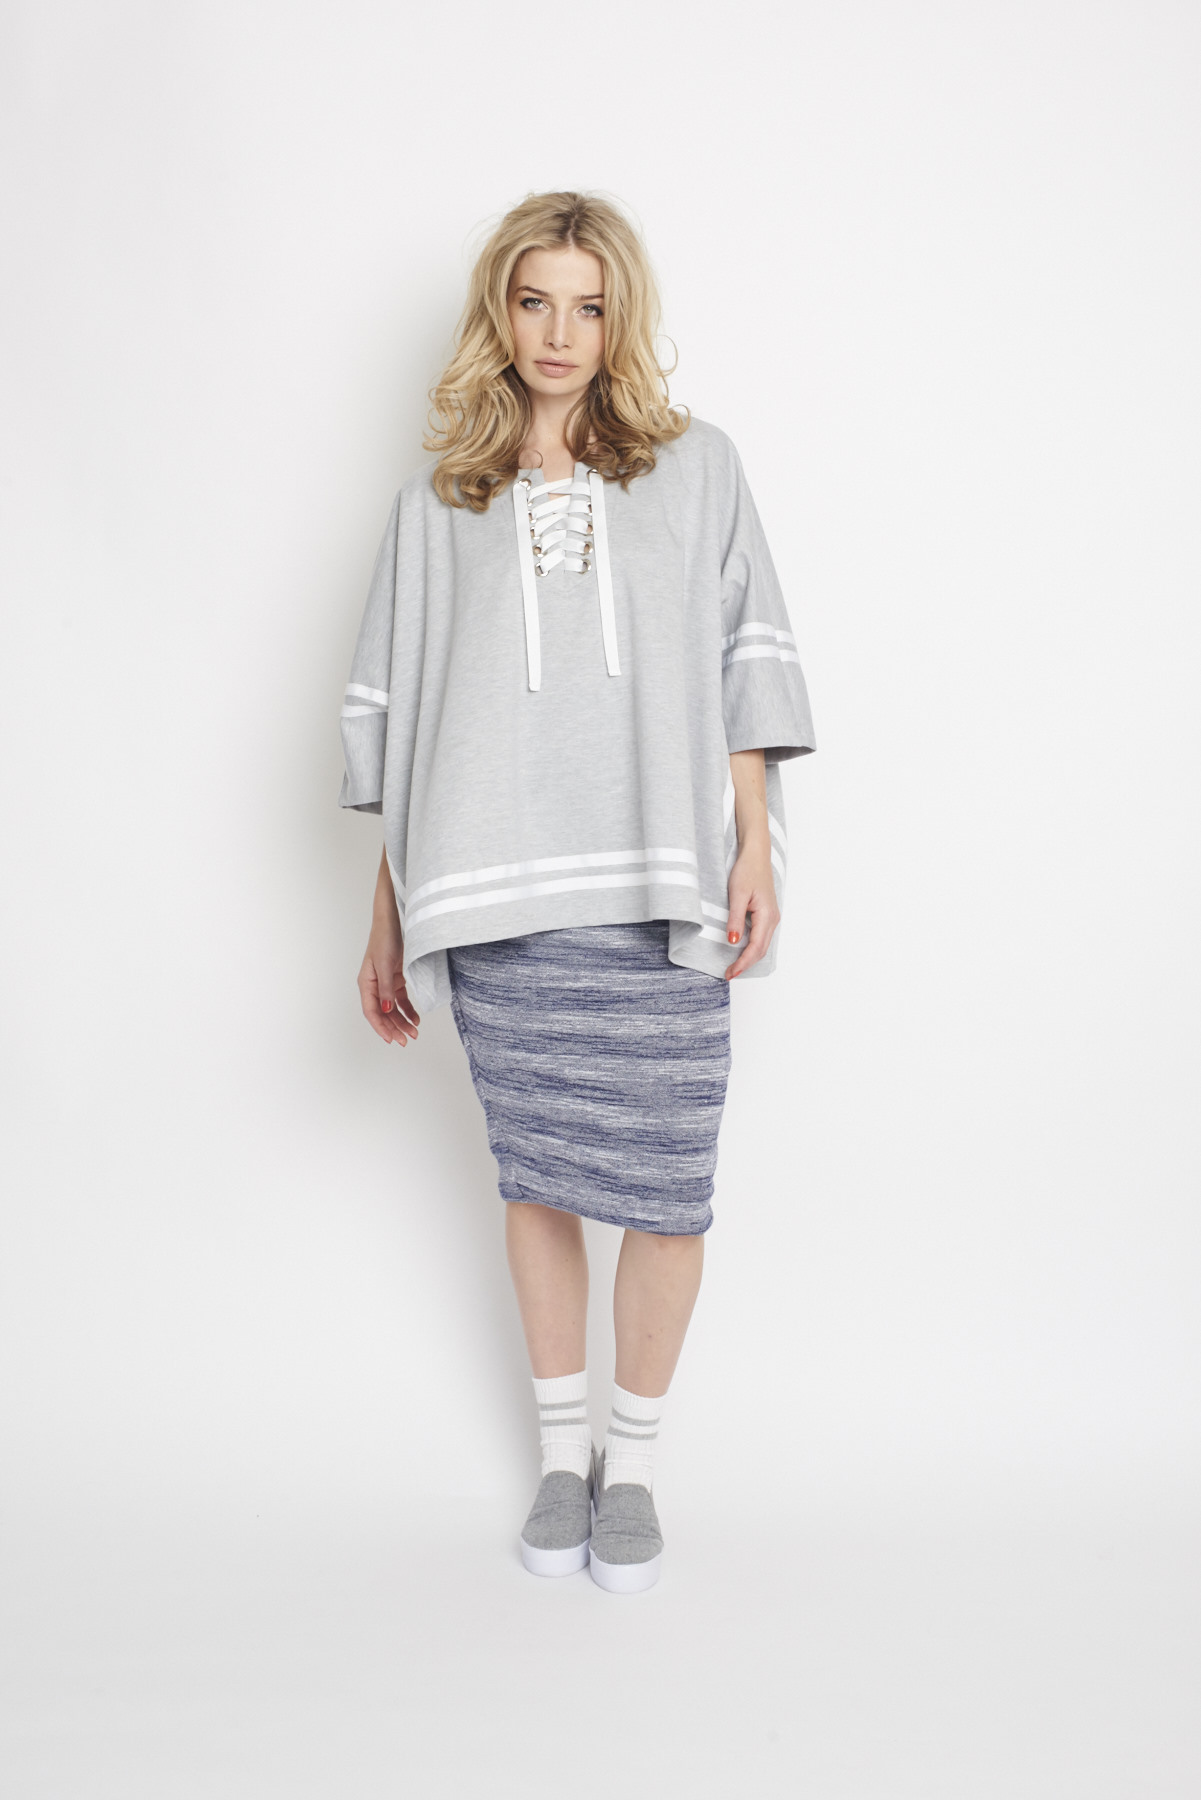 Ketz-ke Sporty Cape Sweater, RRP$185 & Ketz-ke Endless Skirt, RRP$115